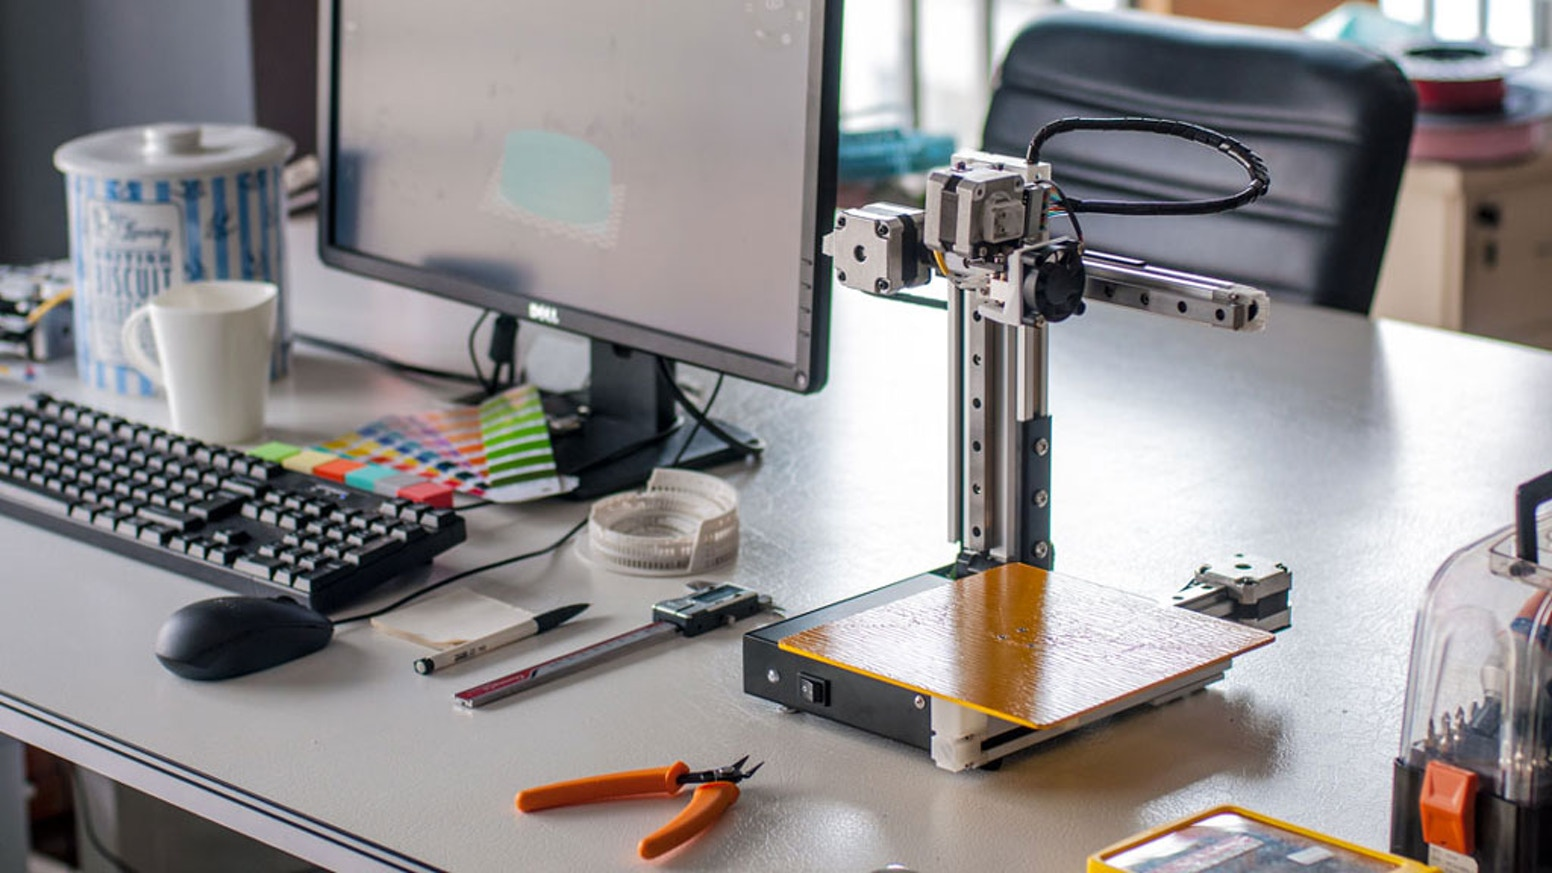 A feature-packed 3D printer with 3 printable projects, starting at $199. Everything you need to start 3D printing!